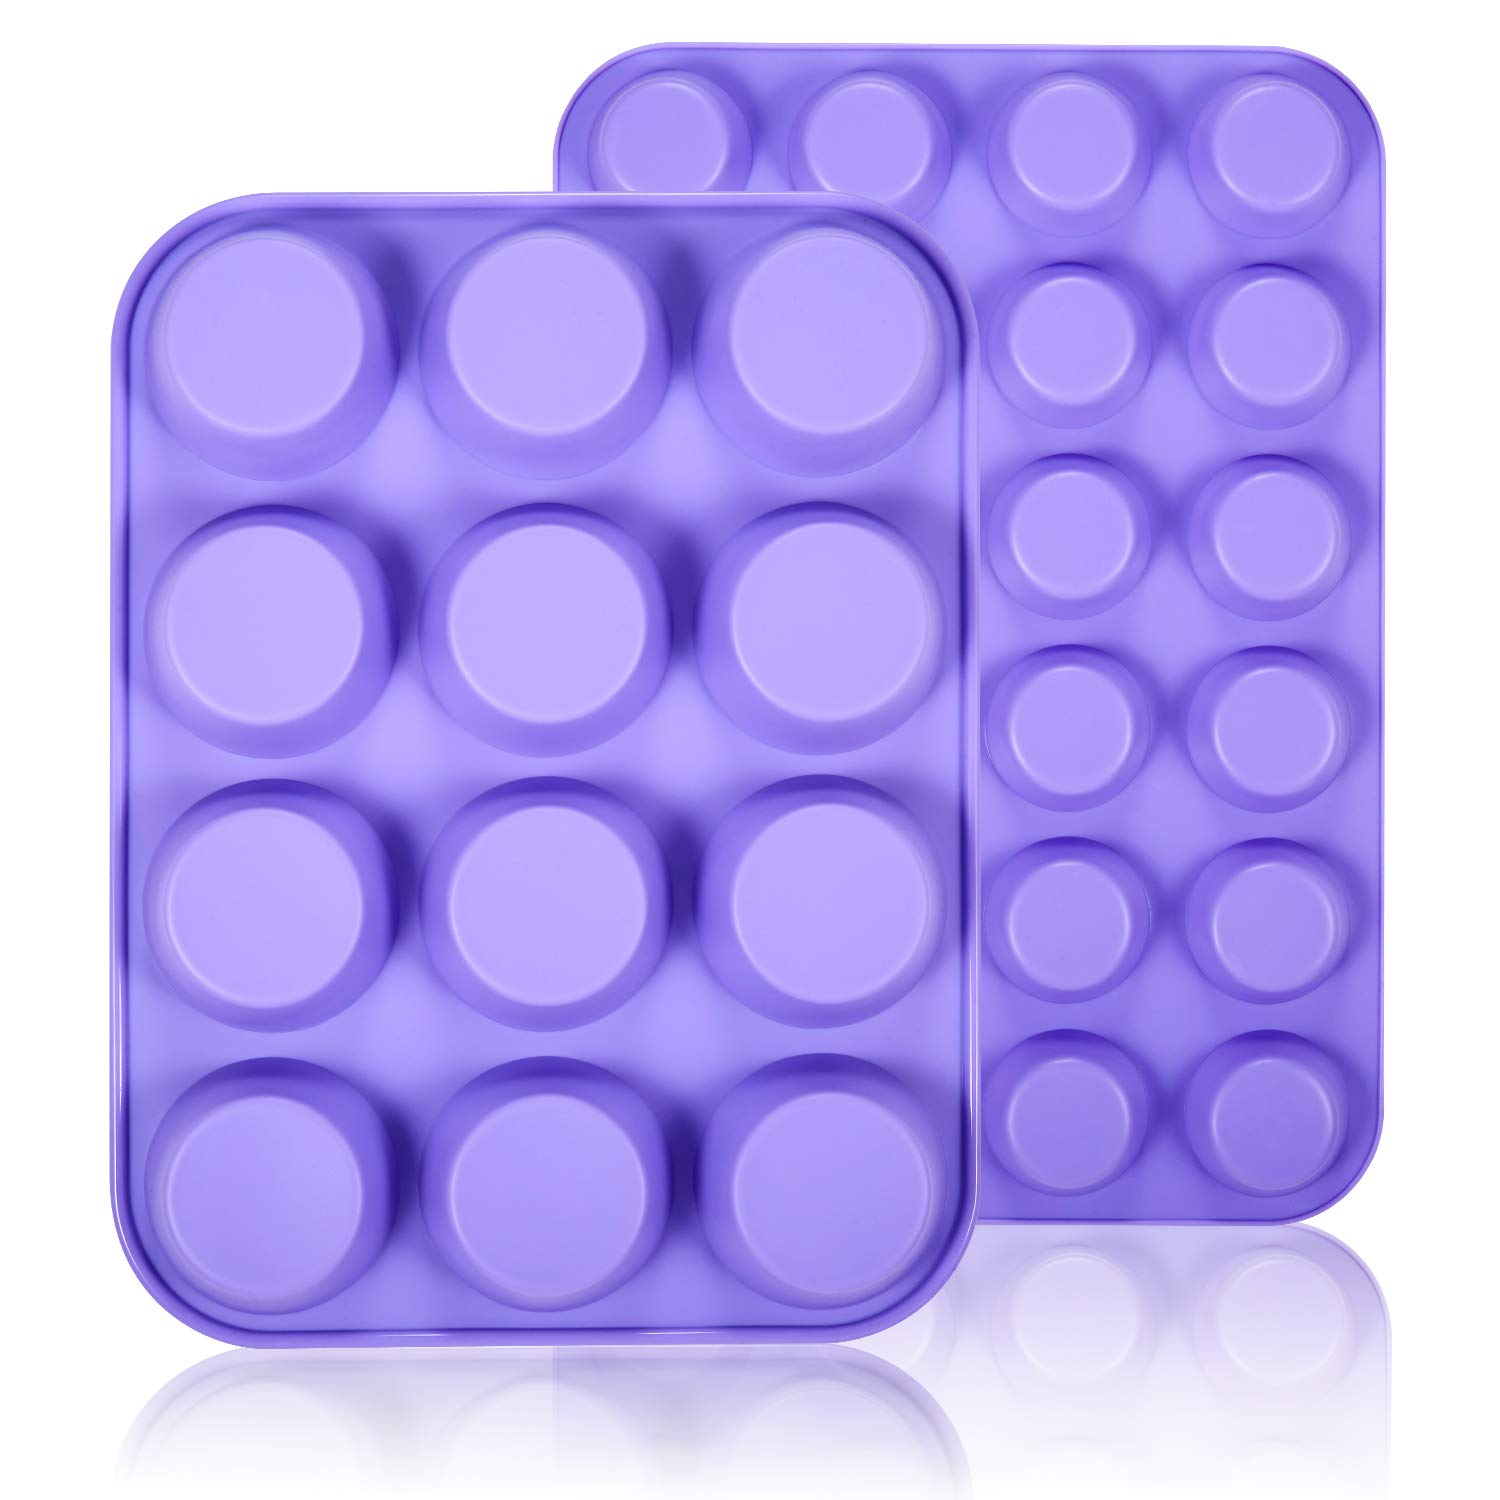 WARMWIND Silicone Muffin Pans, Non-Stick Cupcake Mold Including Mini 24 Cups, 12 Regular Cups, BPA Free Silicone Bakeware Tray, Dishwasher Safe (2 Pack, Purple) by WARMWIND